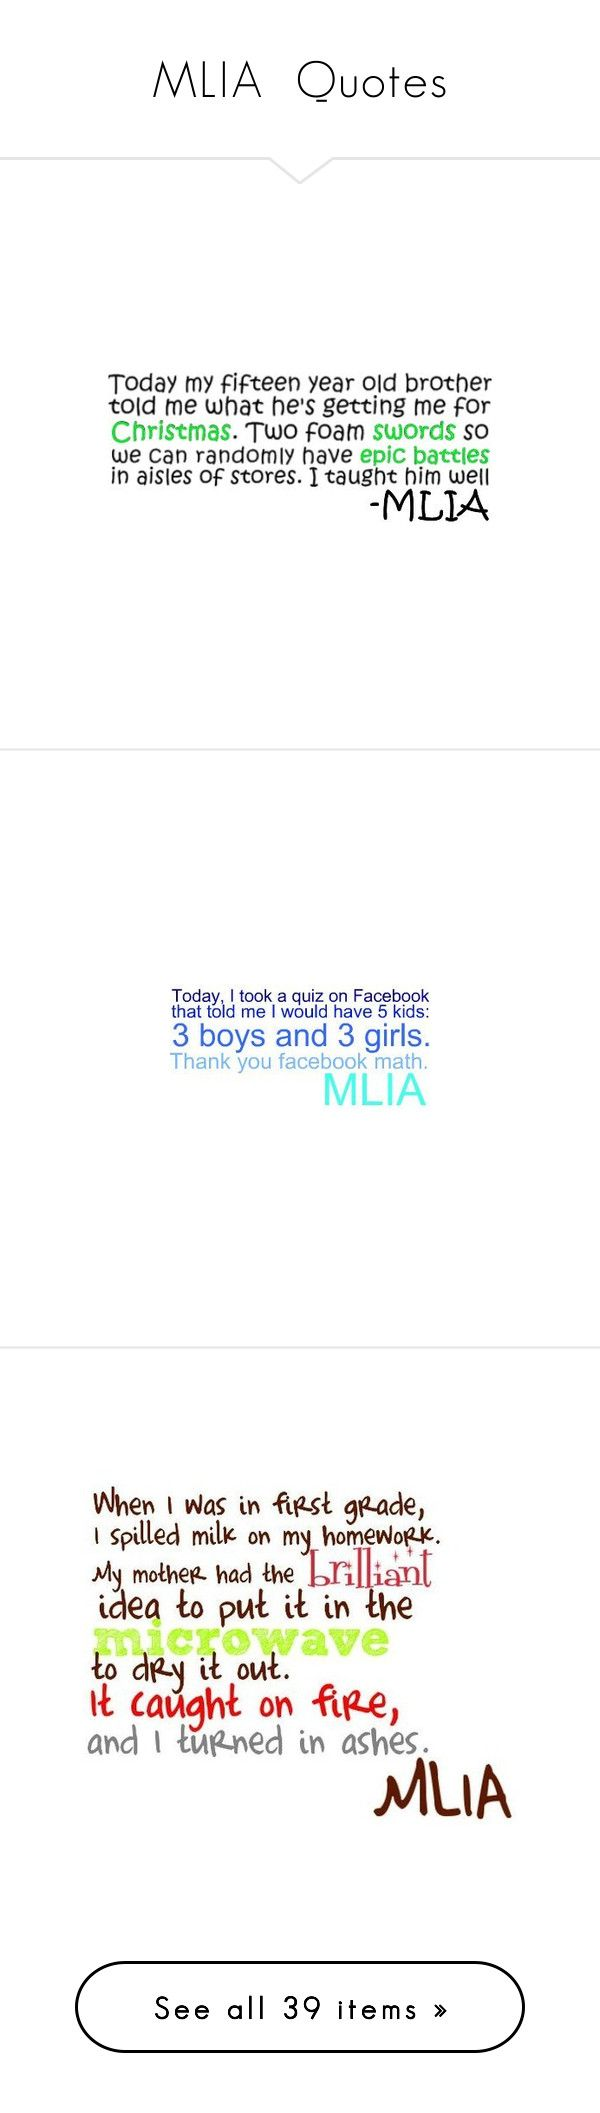 """""""MLIA  Quotes"""" by zebbers4 ❤ liked on Polyvore featuring mlia, quotes, words, funny, text, phrase, saying, sayings, phrases and fillers"""